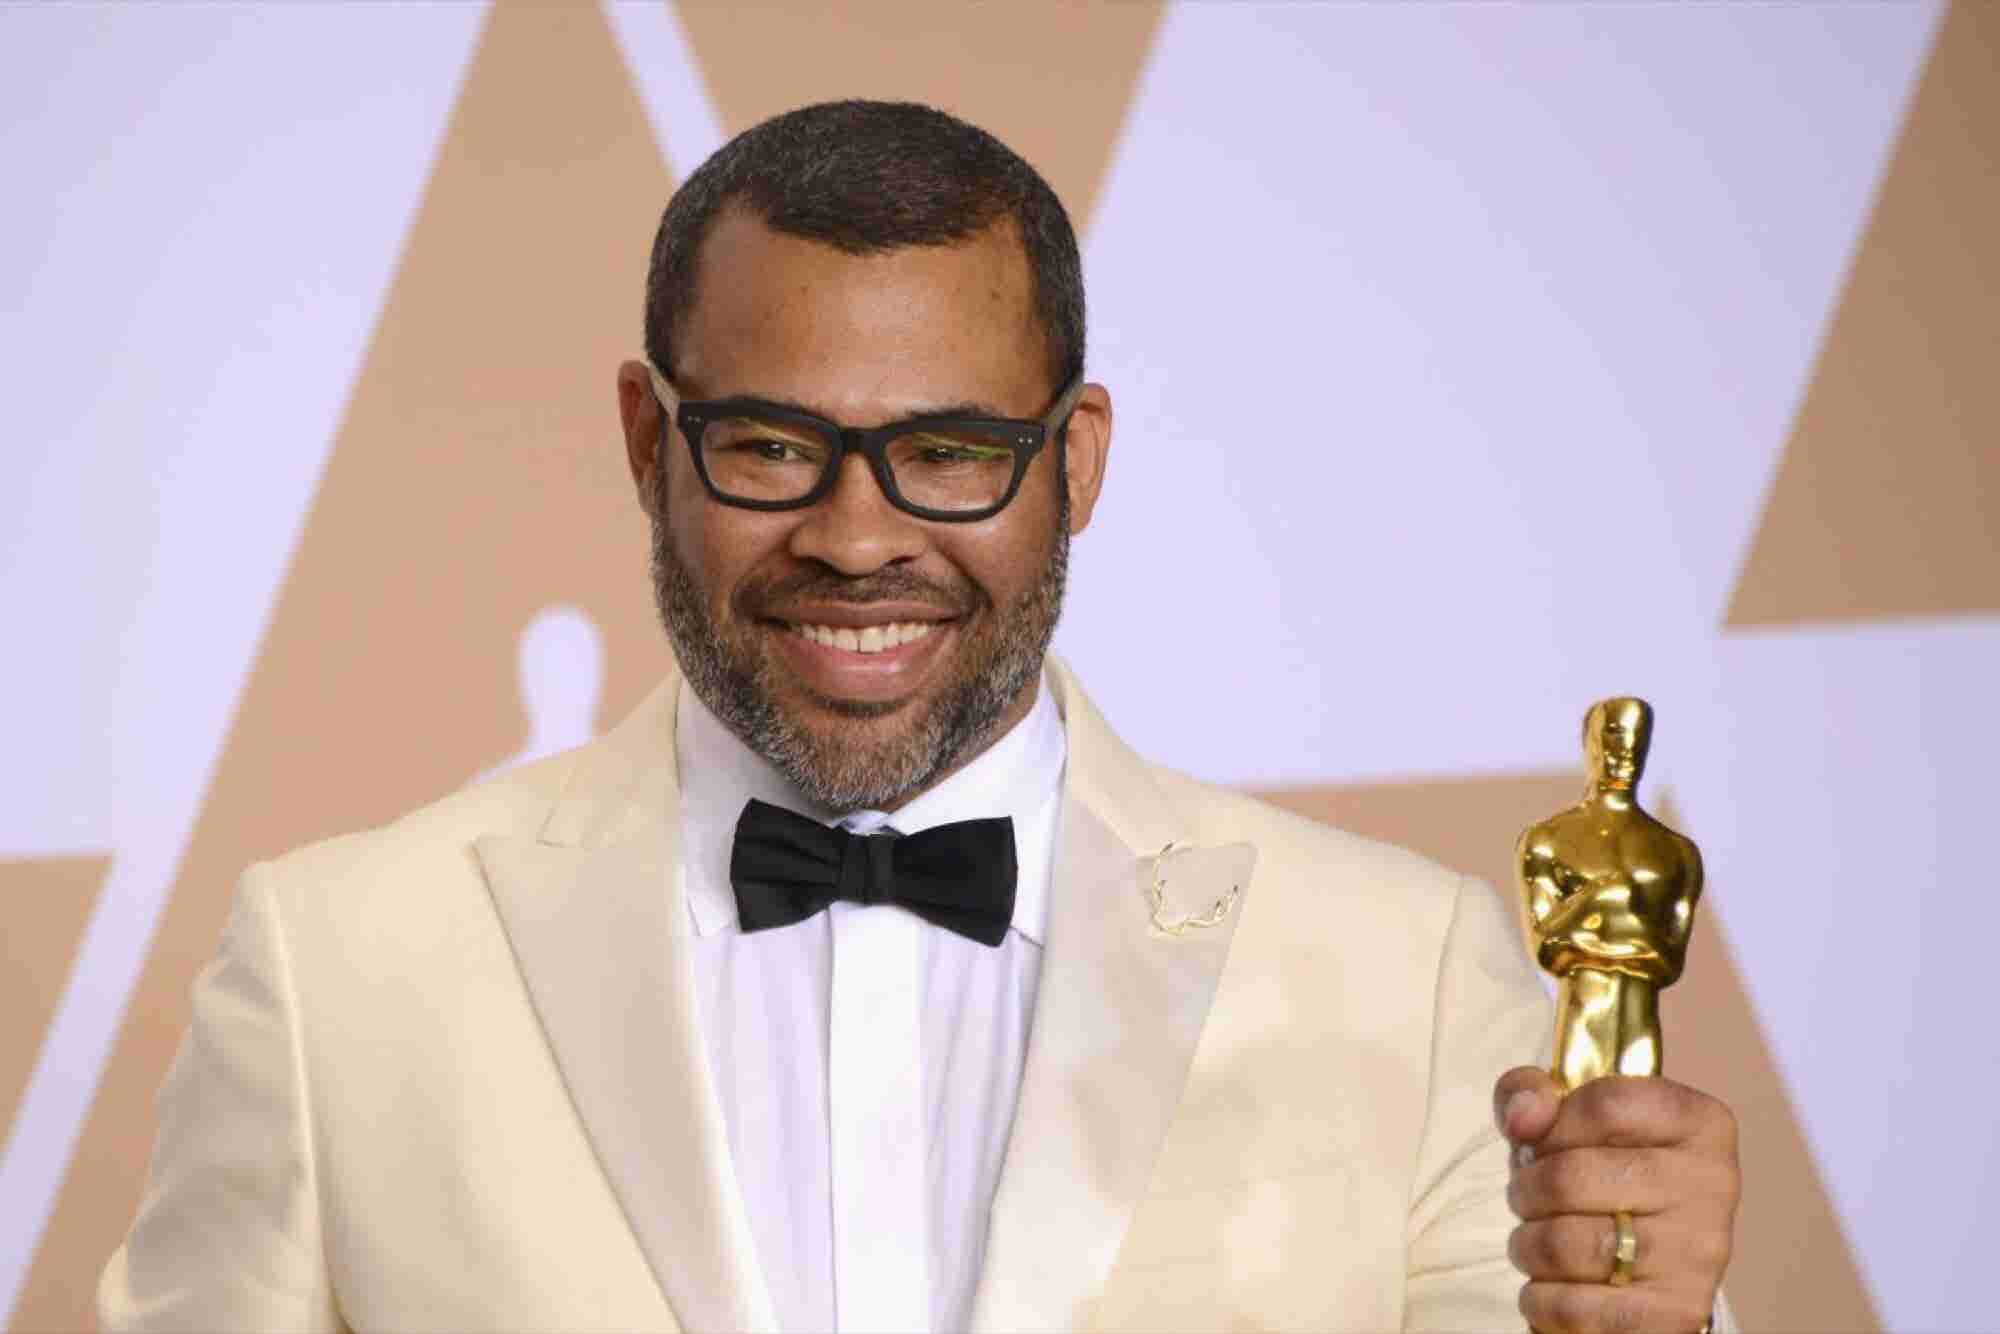 Jordan Peele Overcame Self-Doubt to Become the First Black Person to W...